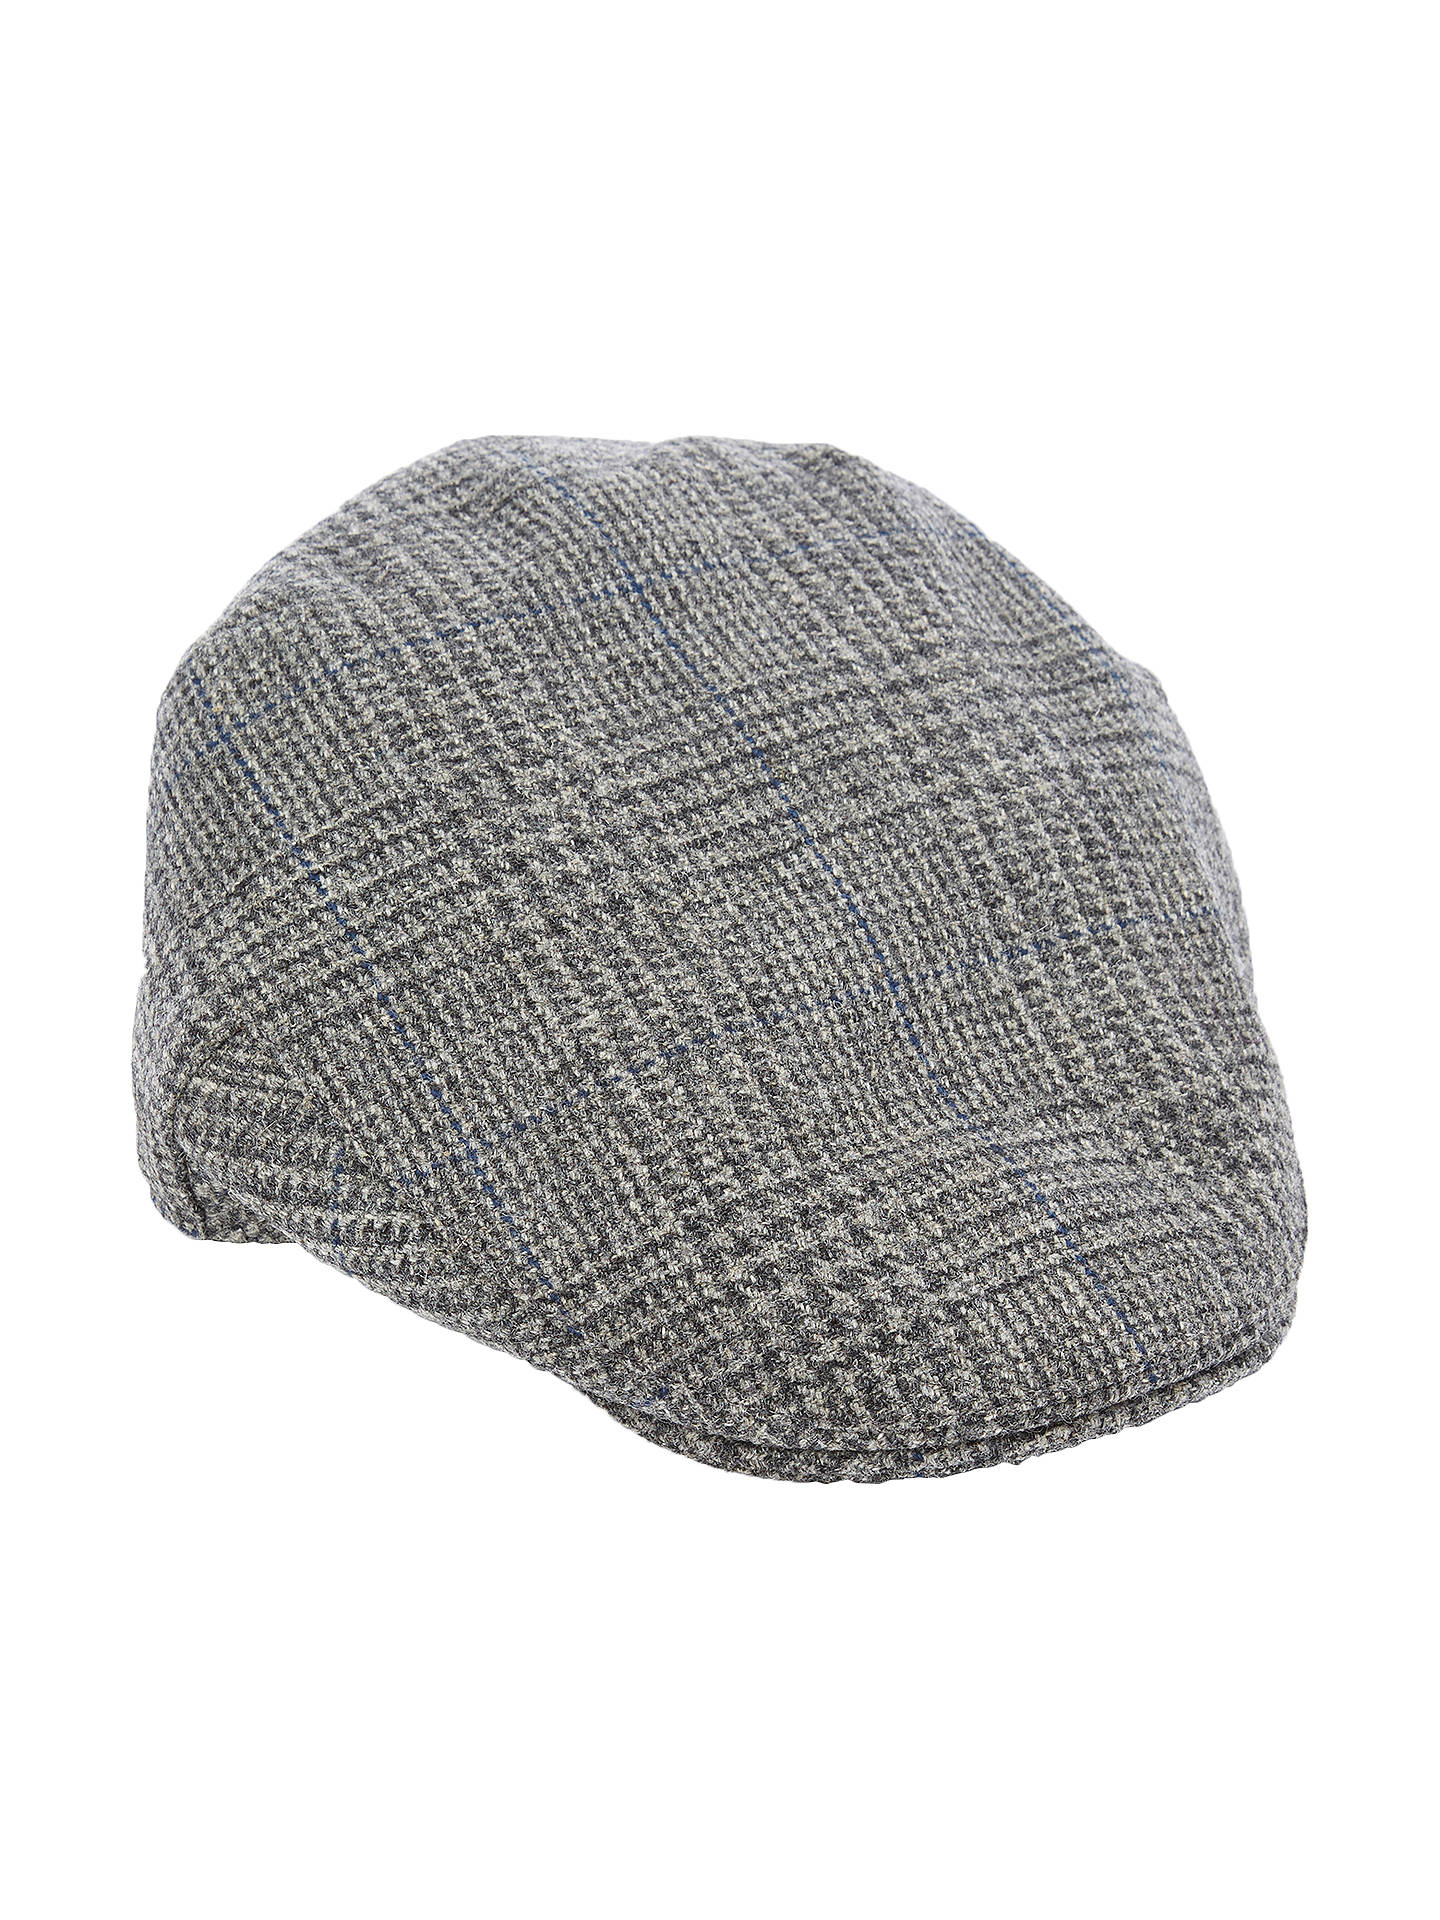 BuyChristys  Balmoral Wool Houndstooth Flat Cap 77b3cd7b2a17